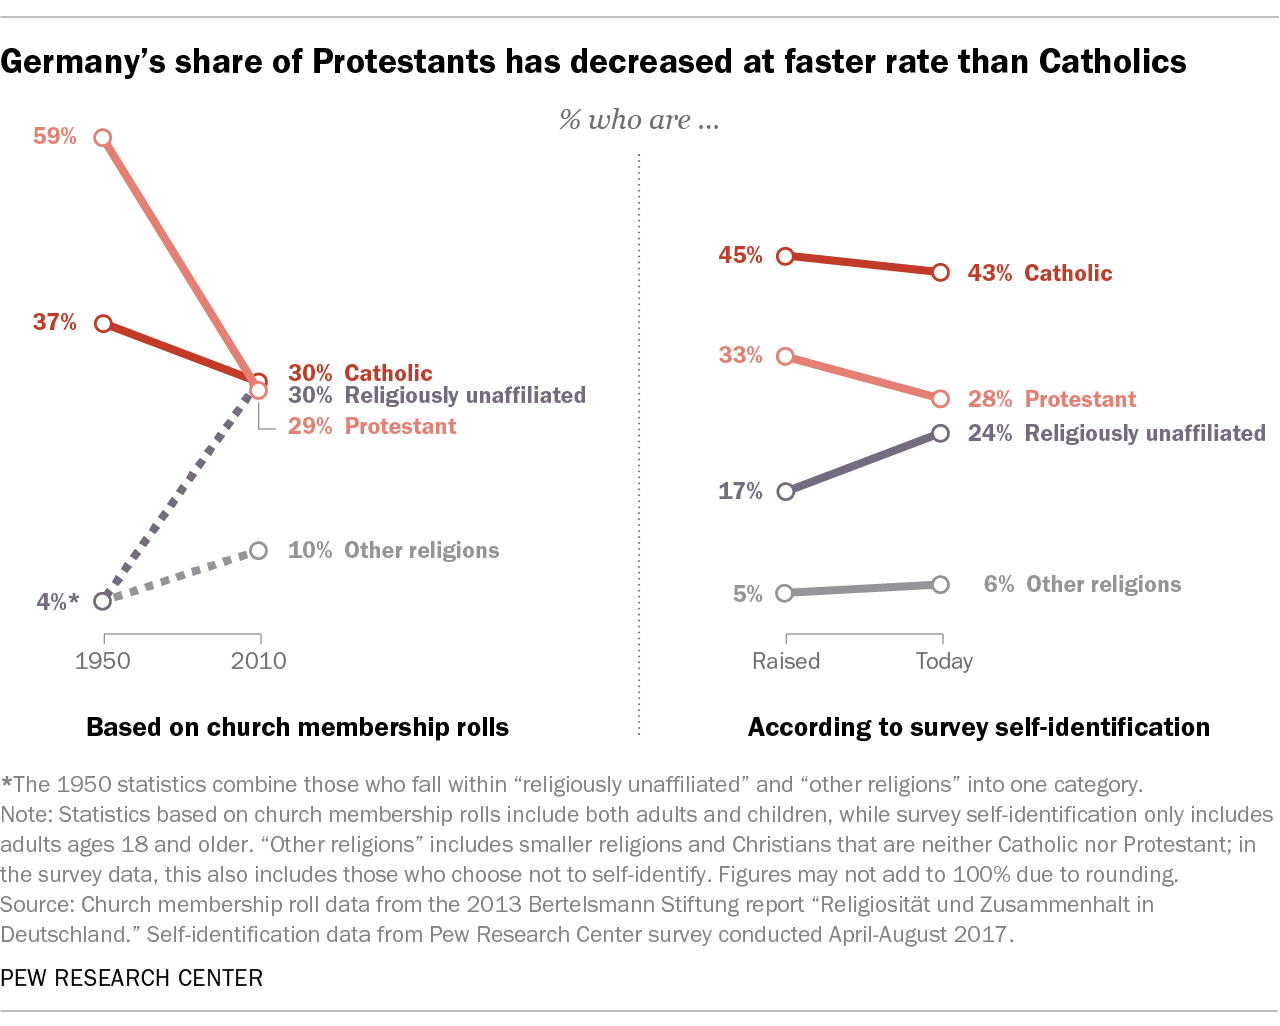 Germany's share of Protestants has decreased at a faster rate than Catholics